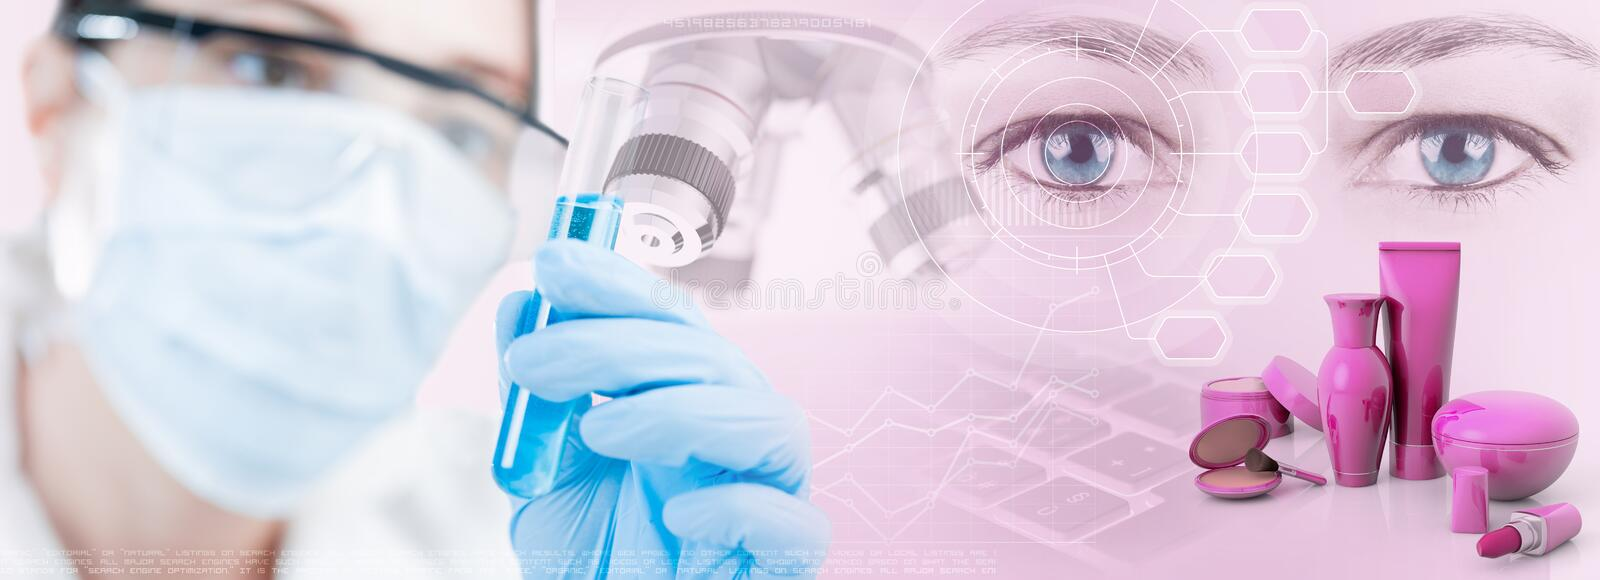 Female scientist, microscope and scientific research in cosmetic industry royalty free stock photography